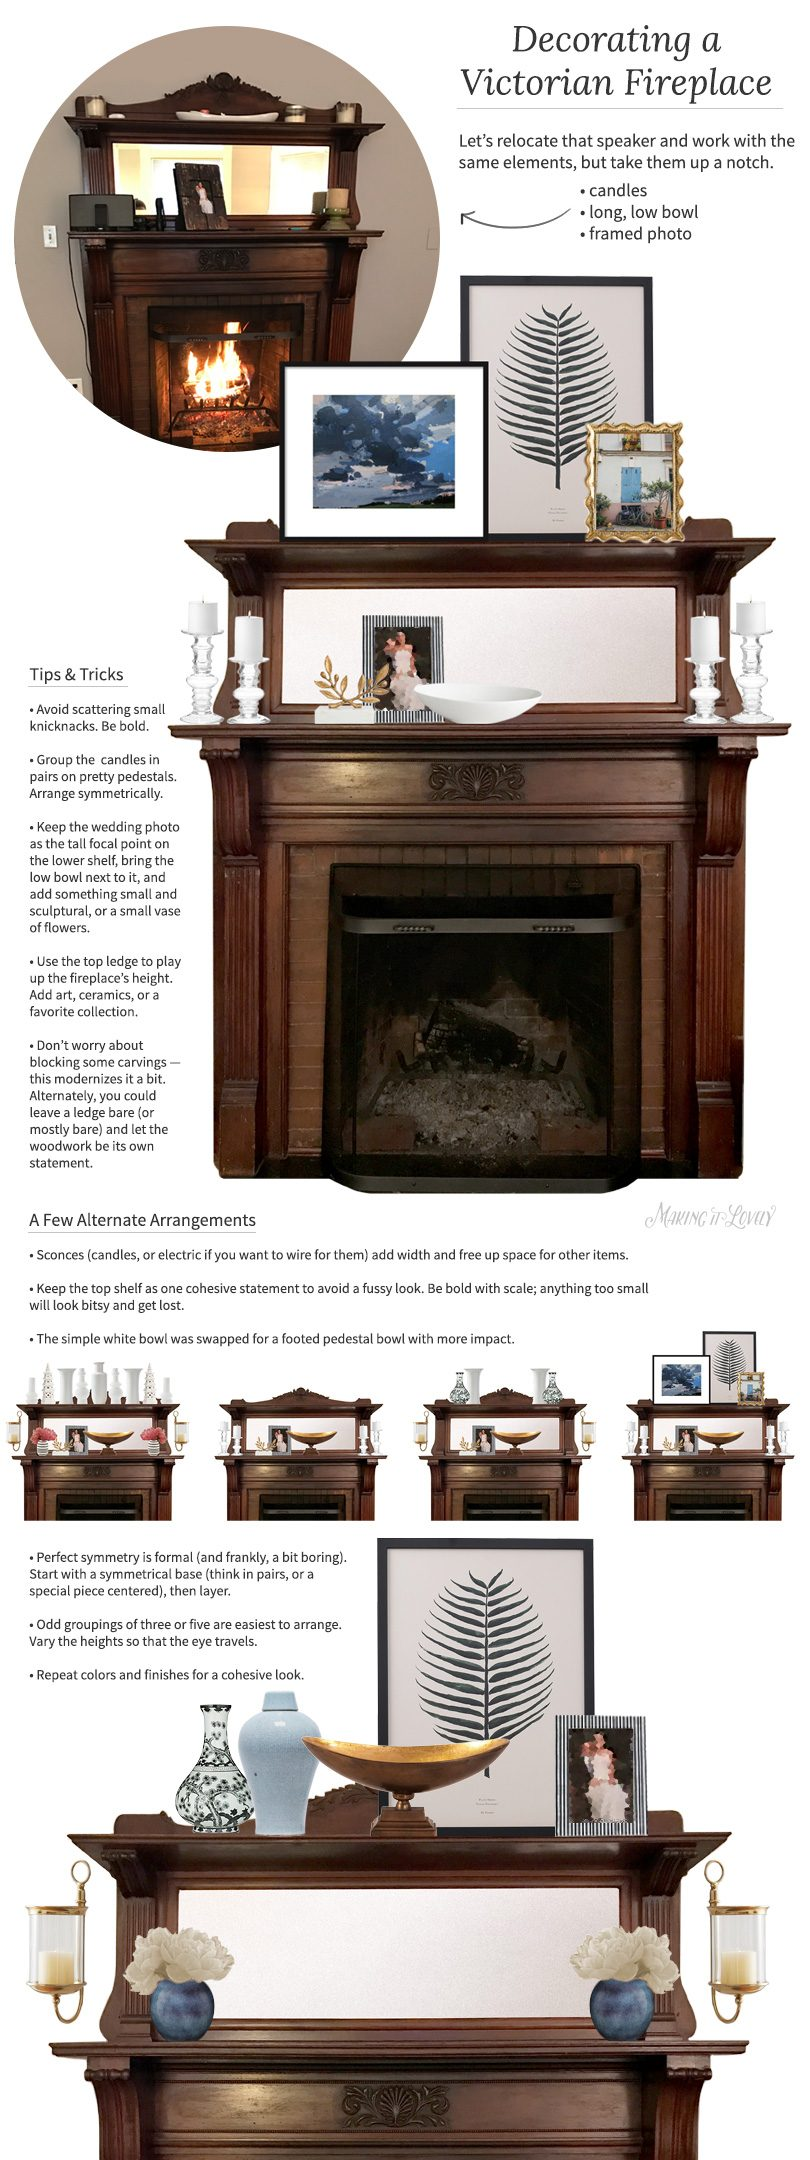 modern ideas for a victorian fireplace making it lovely